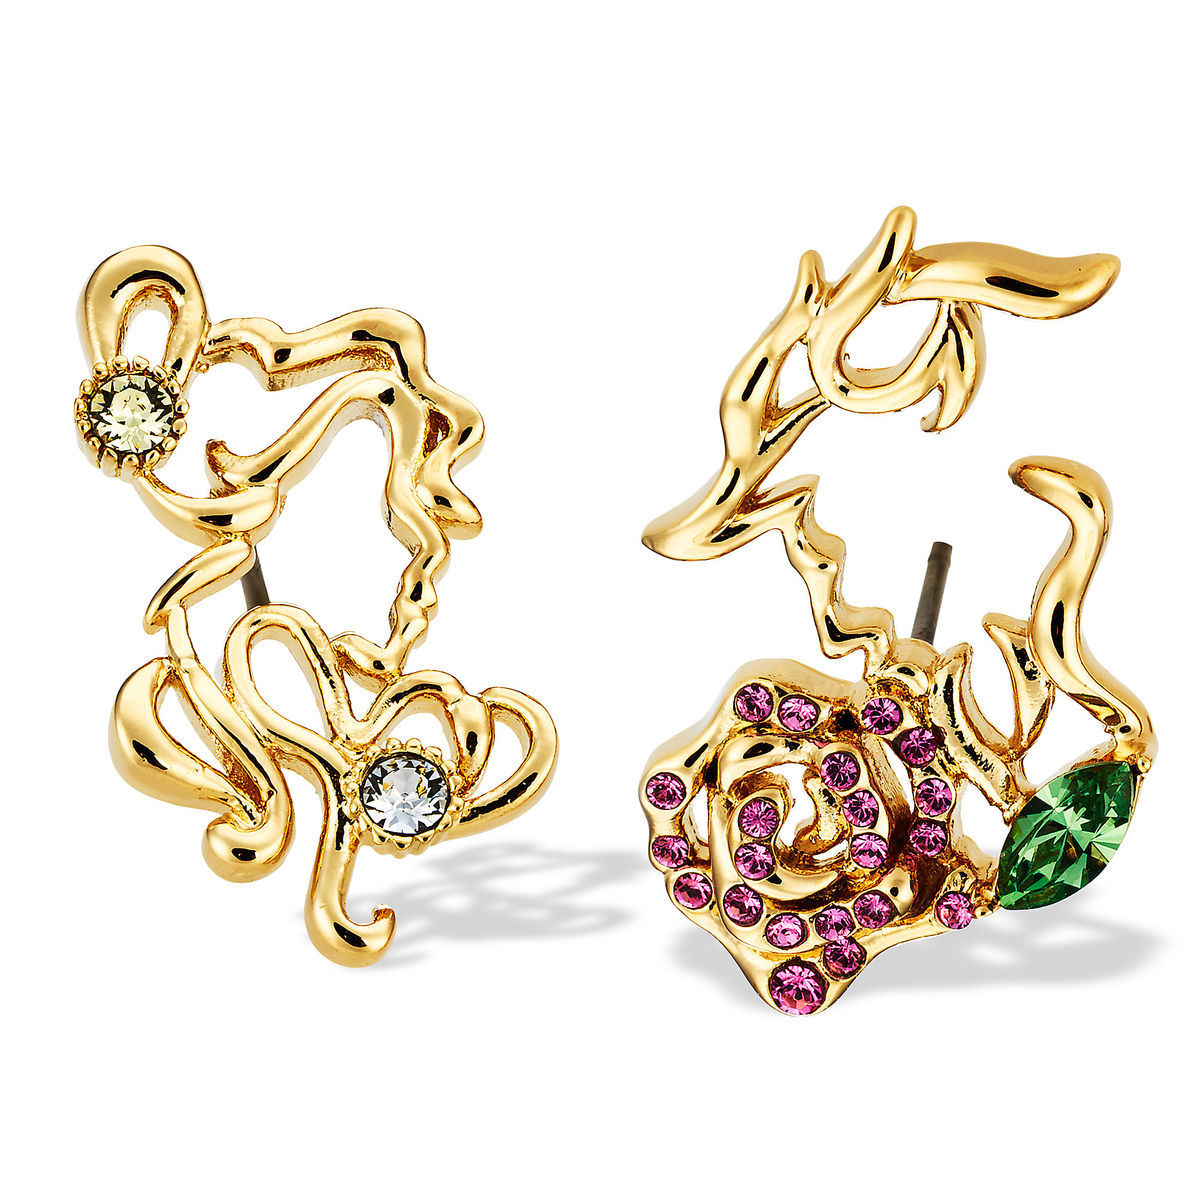 Disney Arribas Earrings - Beauty and the Beast with Rose